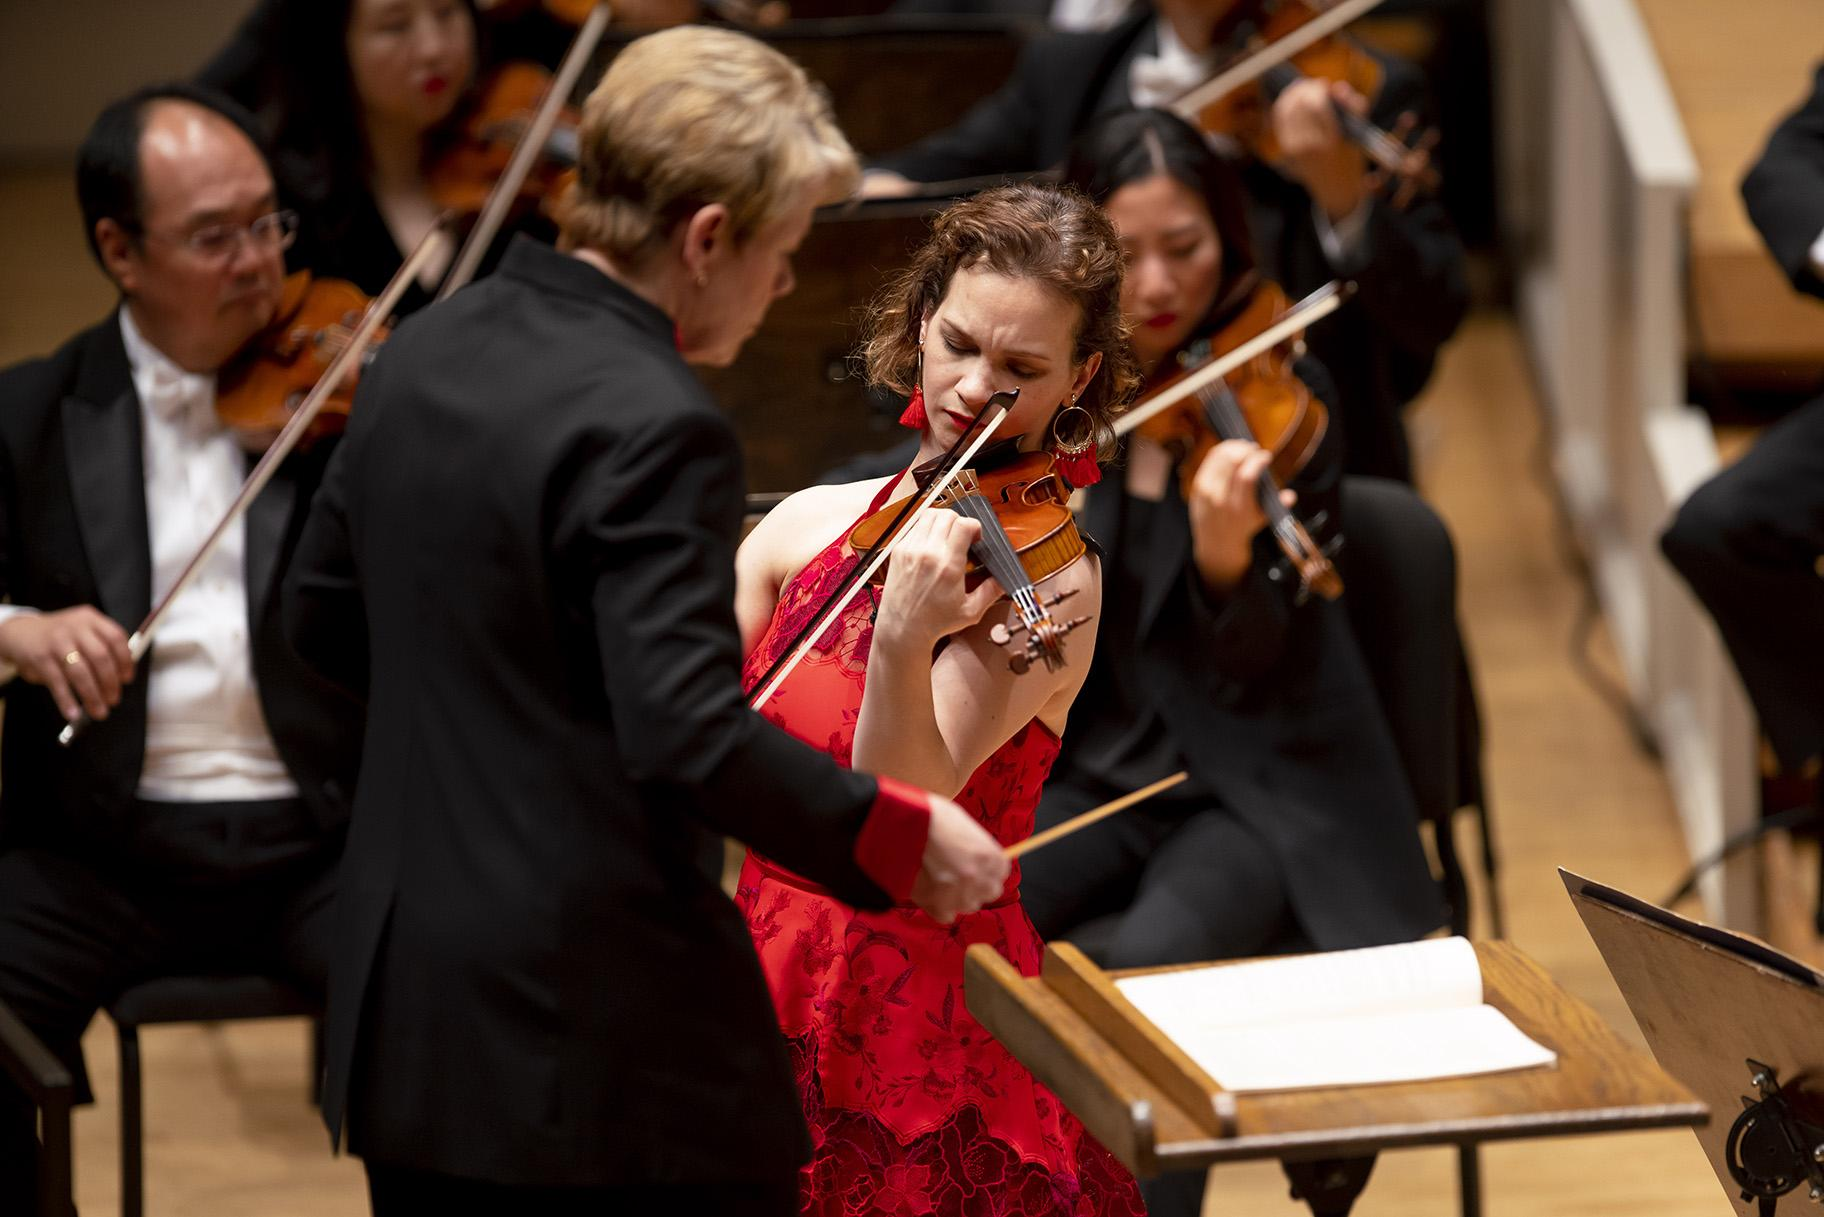 Hilary Hahn is soloist in Sibelius's Violin Concerto with conductor Marin Alsop and the CSO. (© Todd Rosenberg)